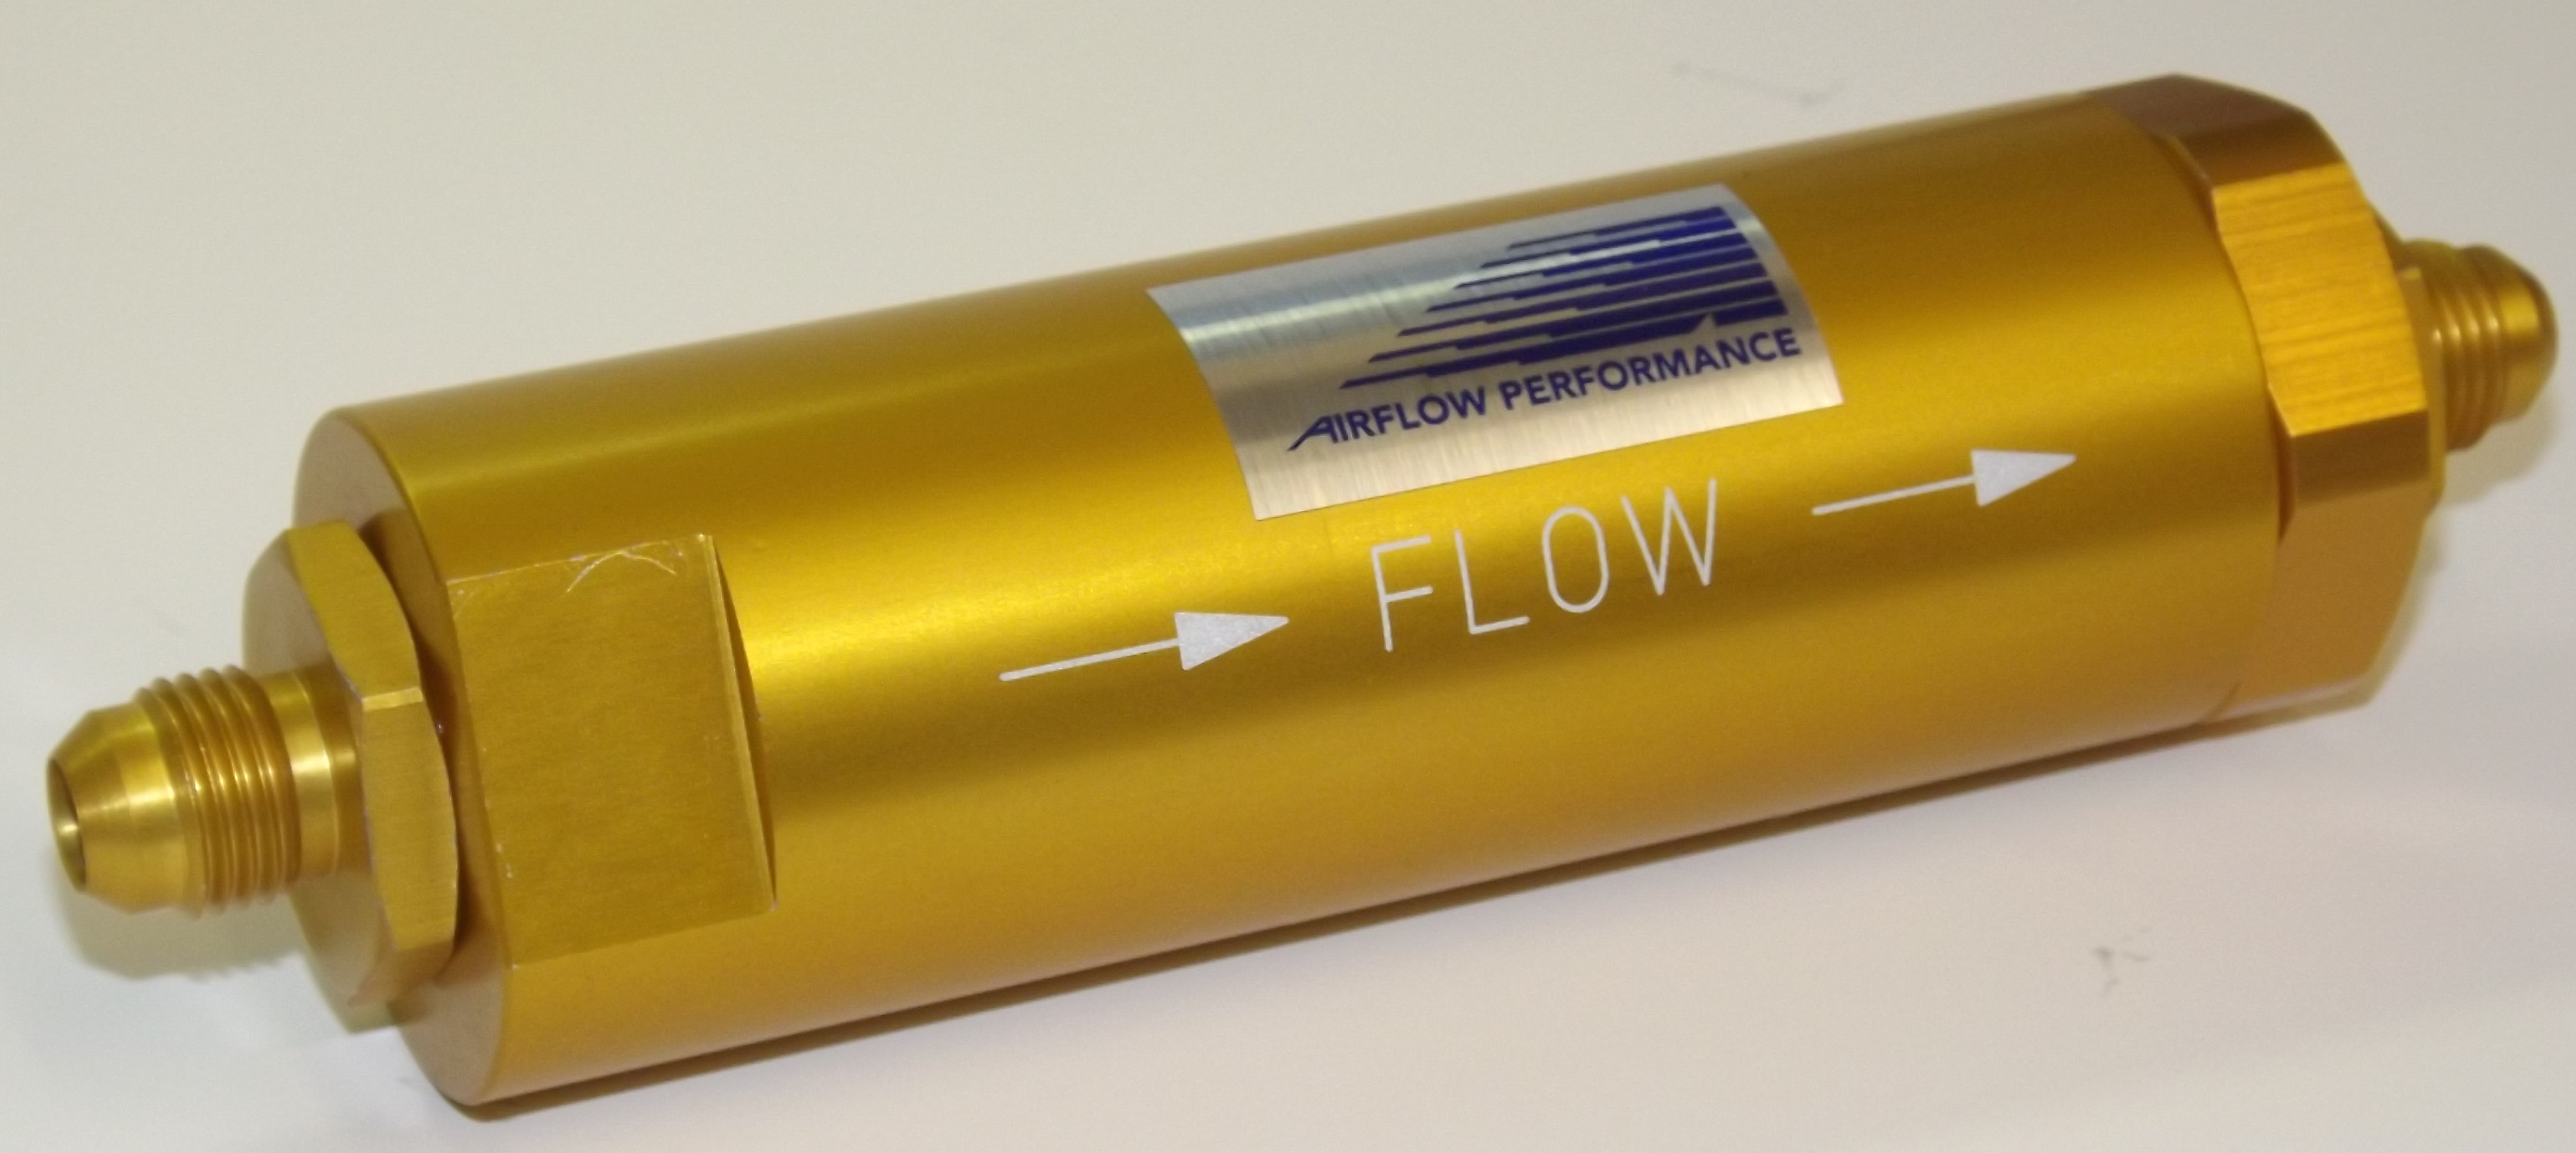 6 maintainable fuel filter airflow performance6 maintainable fuel filter